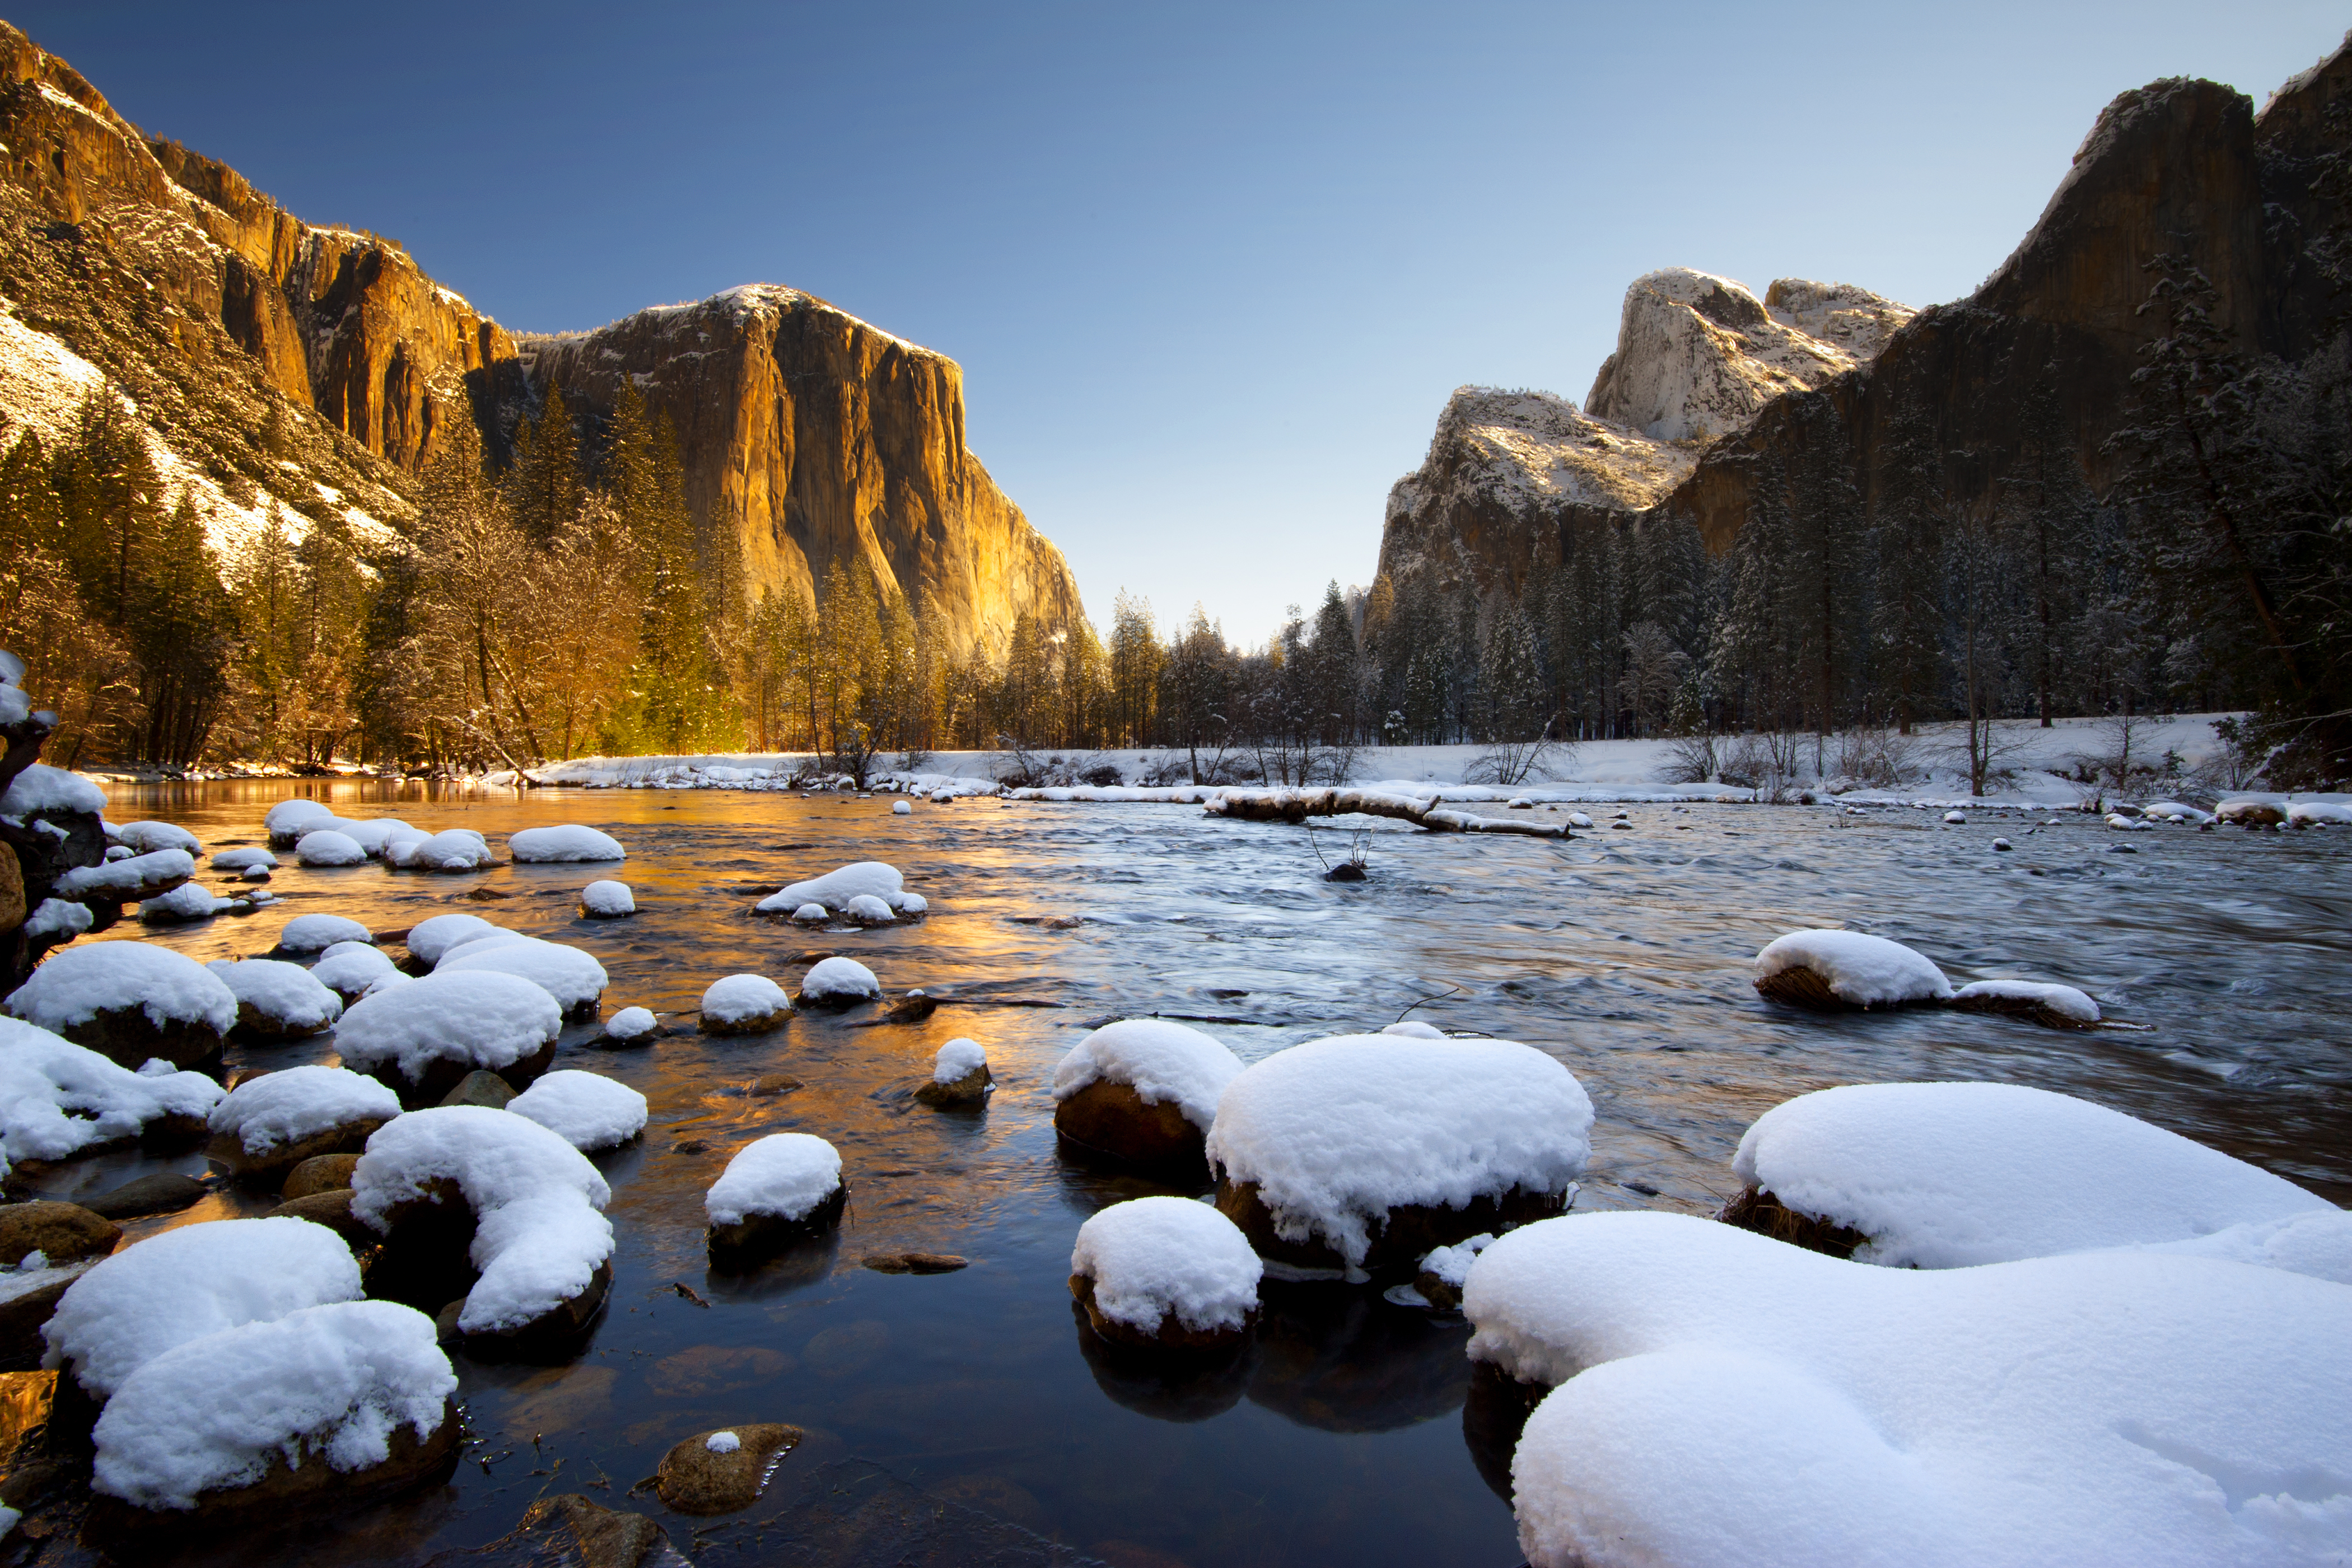 The 10 best National Parks to visit this winter